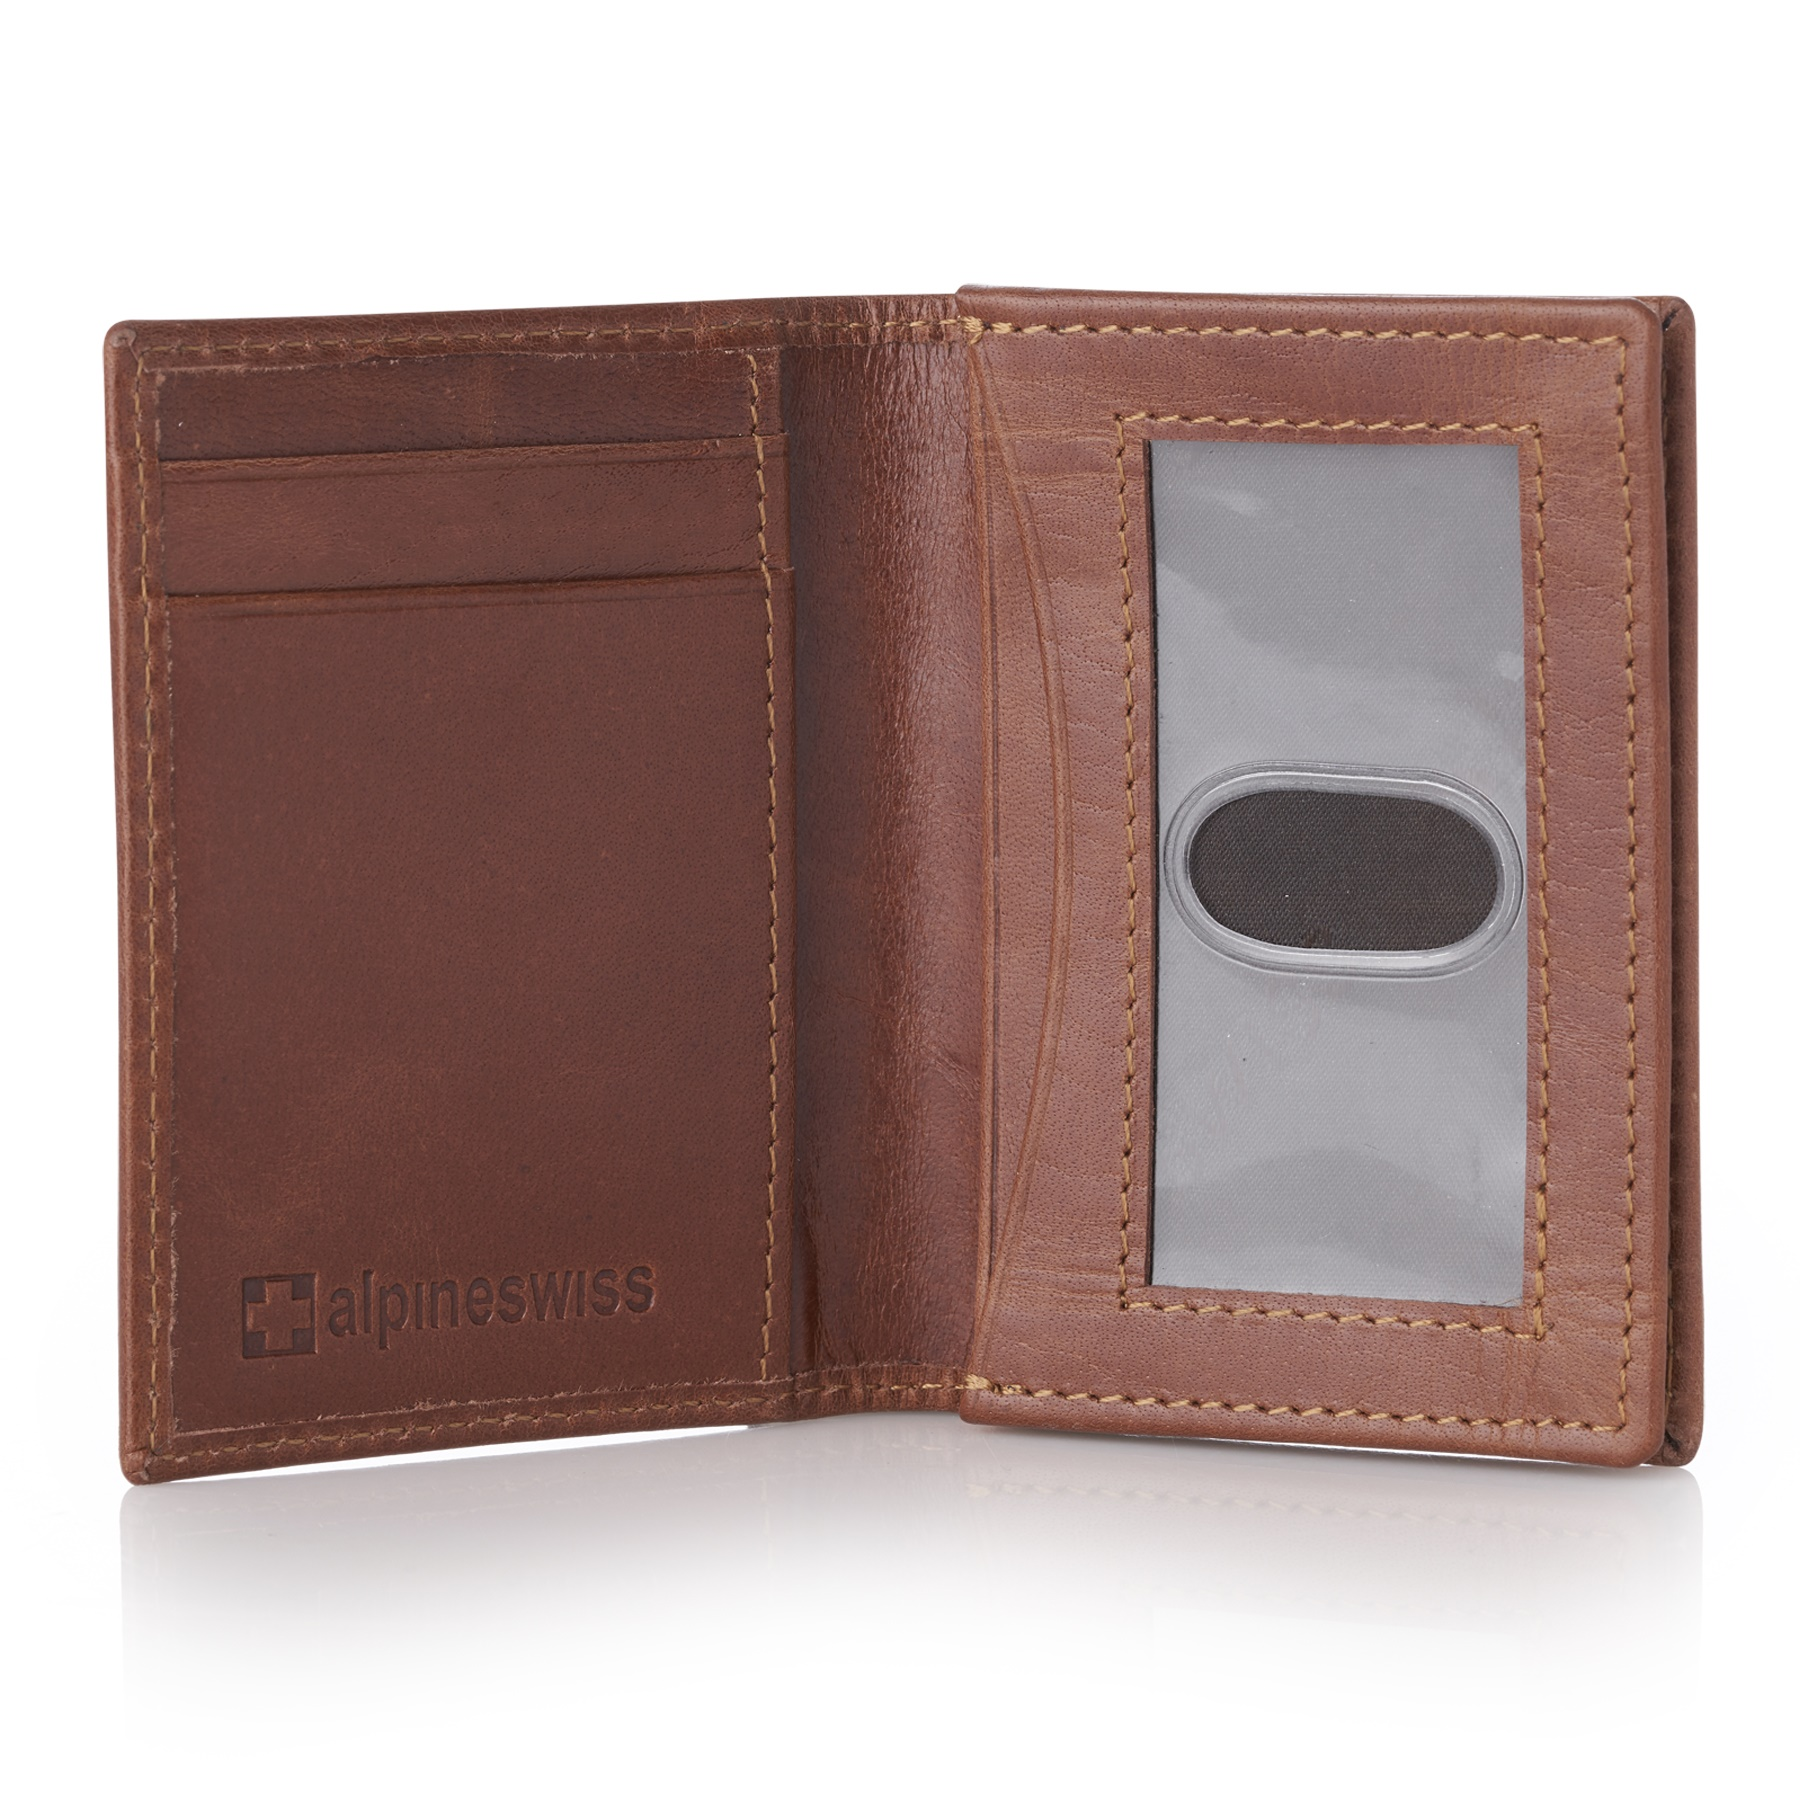 outlet store 4b66e f50c6 Details about Alpine Swiss RFID Leather Business Card Wallet Minimalist ID  Window Card Holder